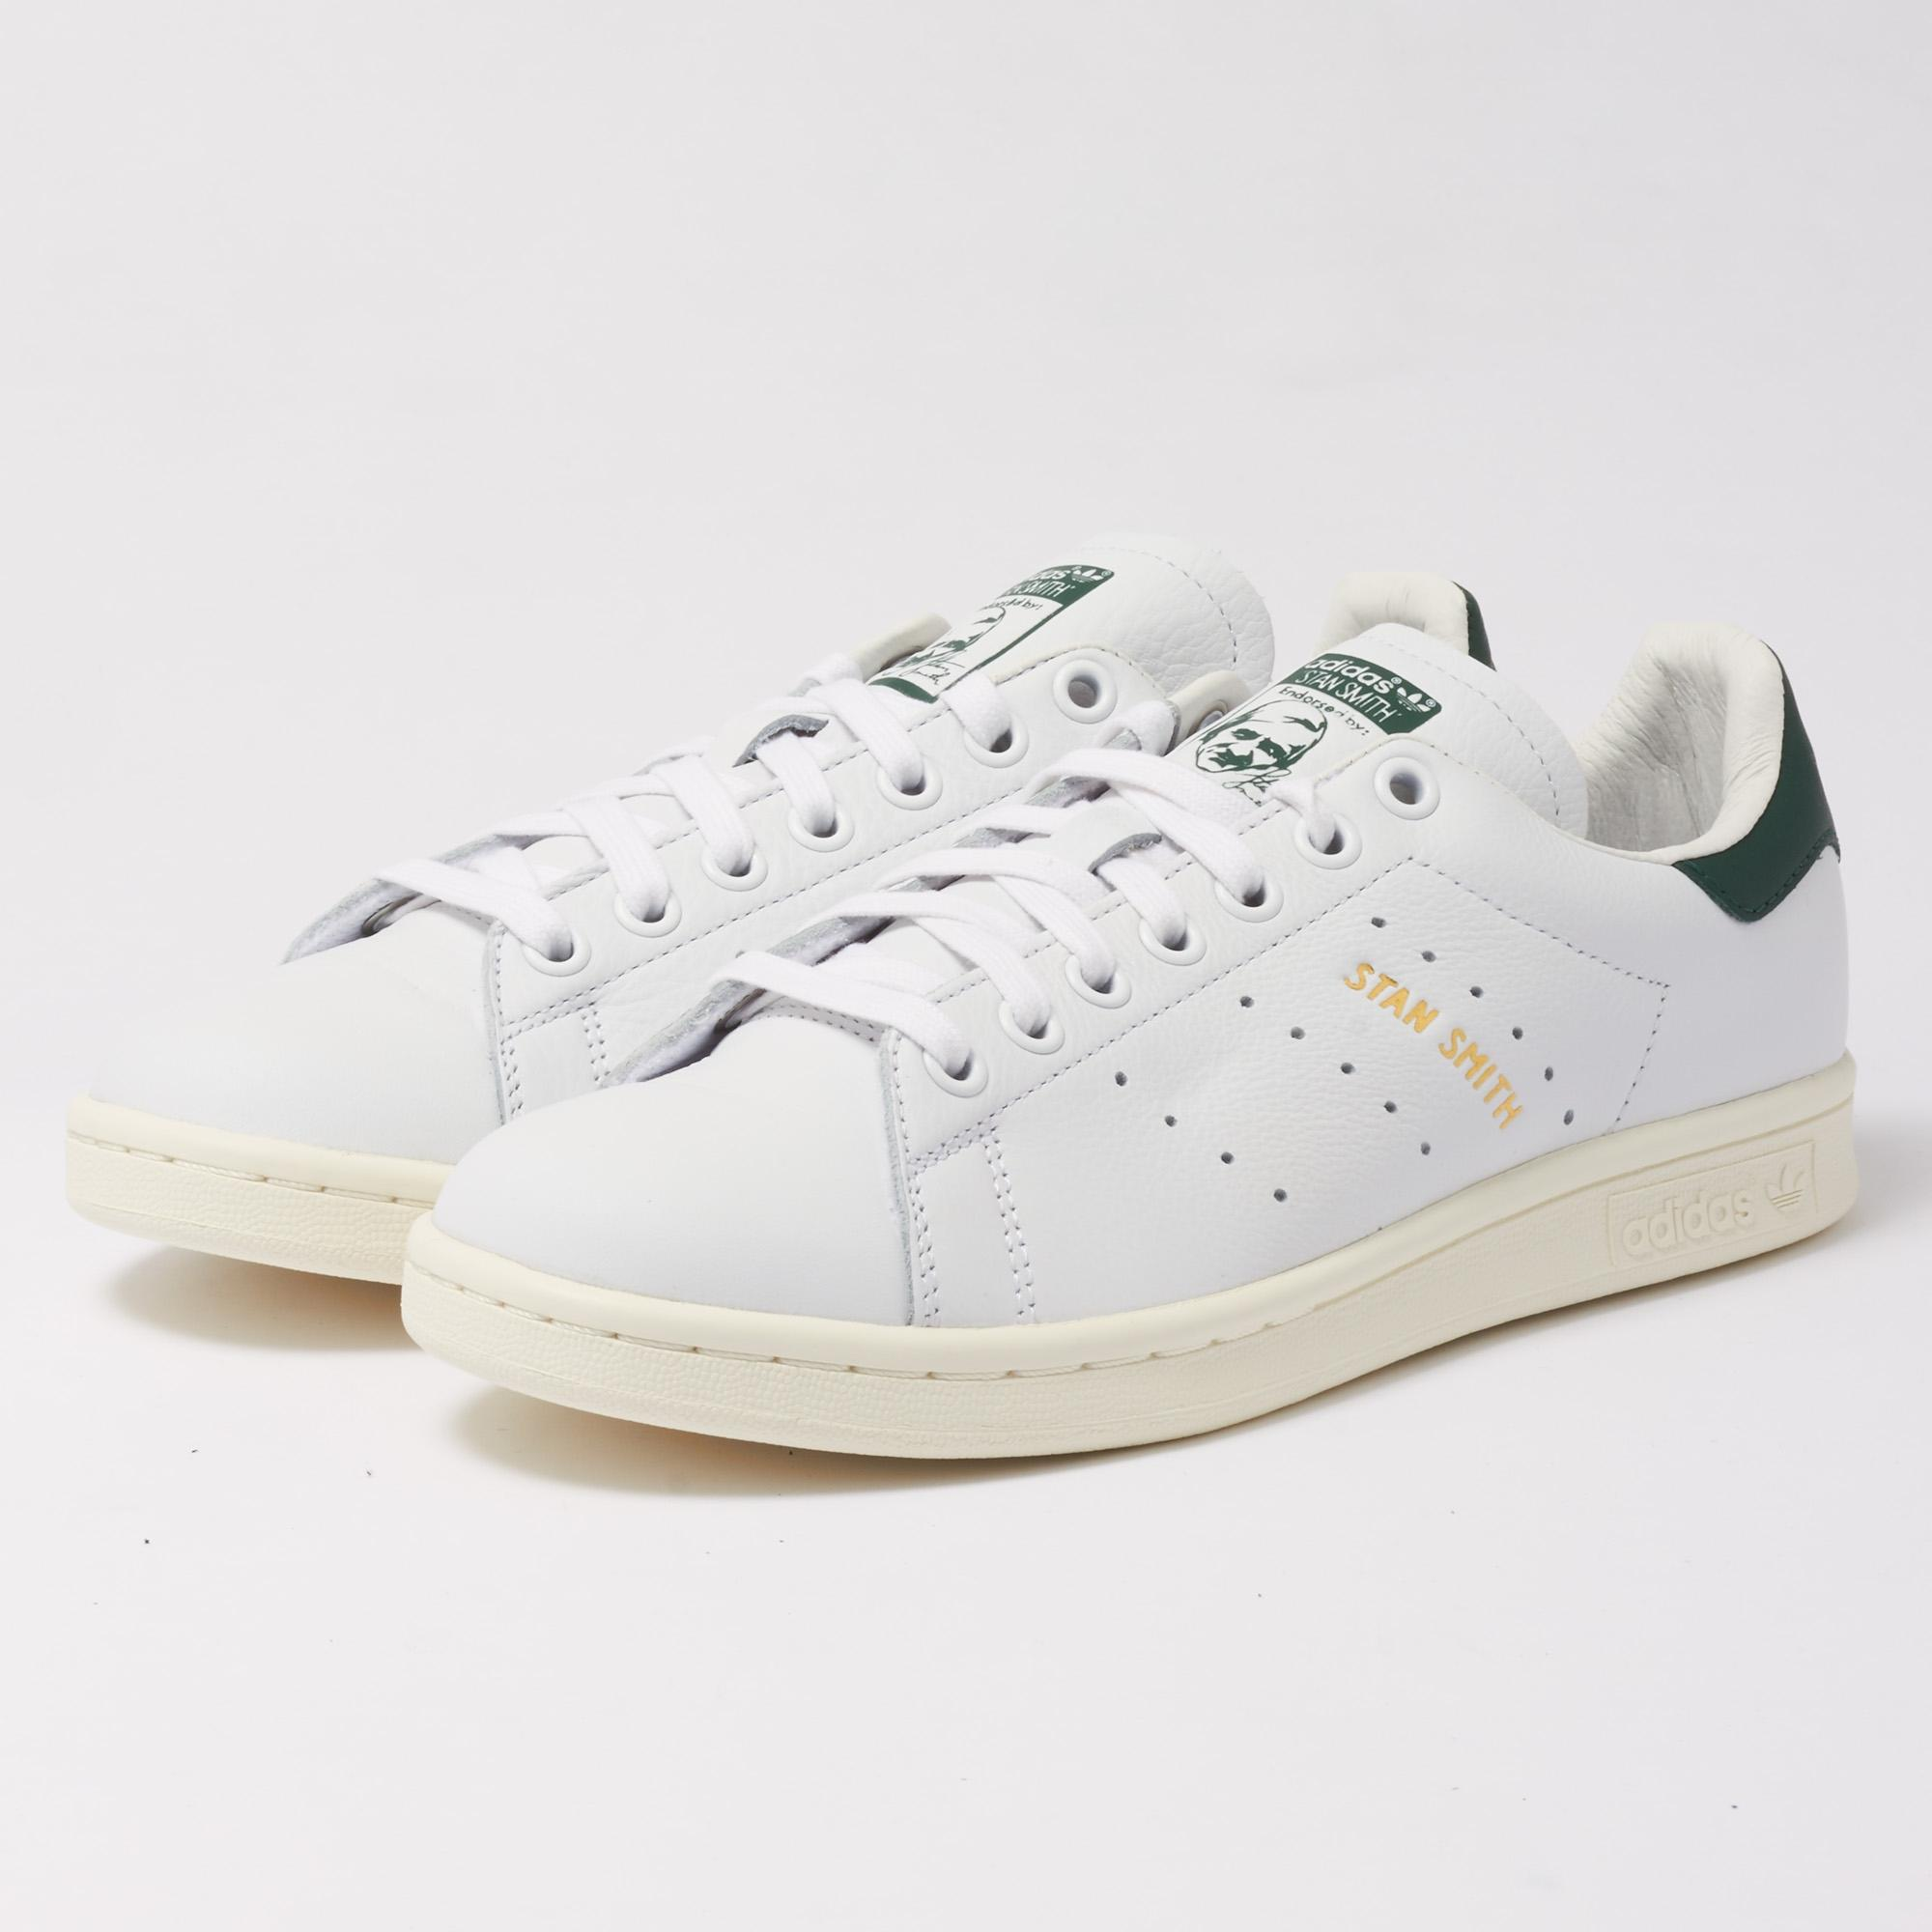 adidas Originals F/22 PK - Trainers - raw gold/raw desert/collegiate burgundy Ys9W9geSs